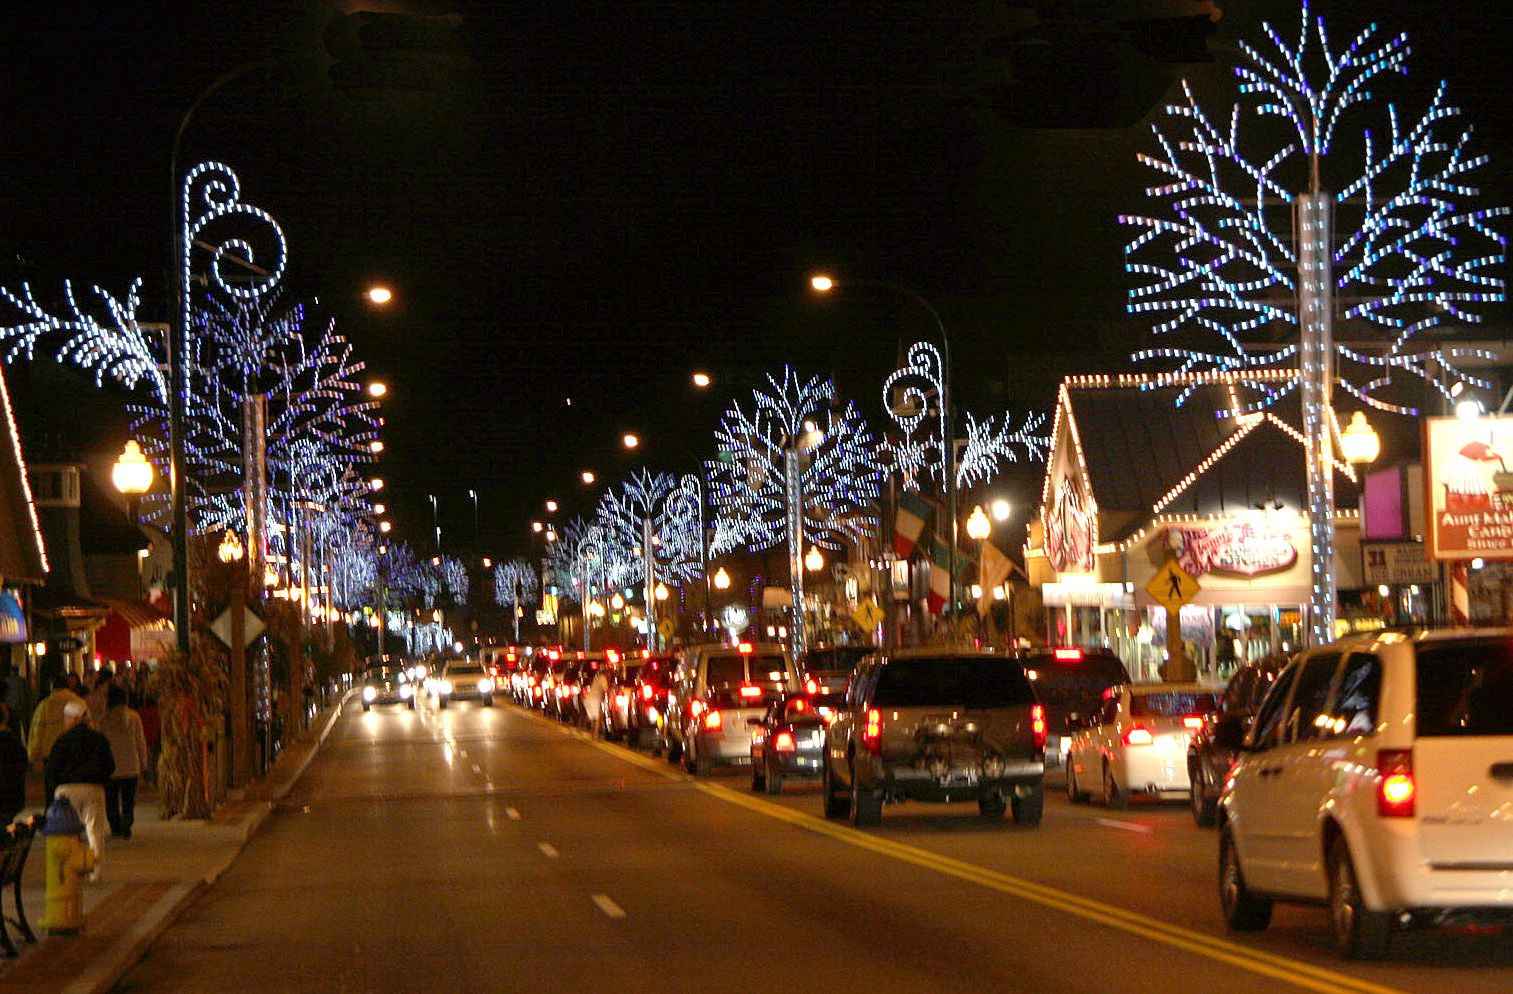 Cabins in gatlinburg tn decorated for christmas - Explore Gatlinburg S Winter Wonderland This Holiday Season